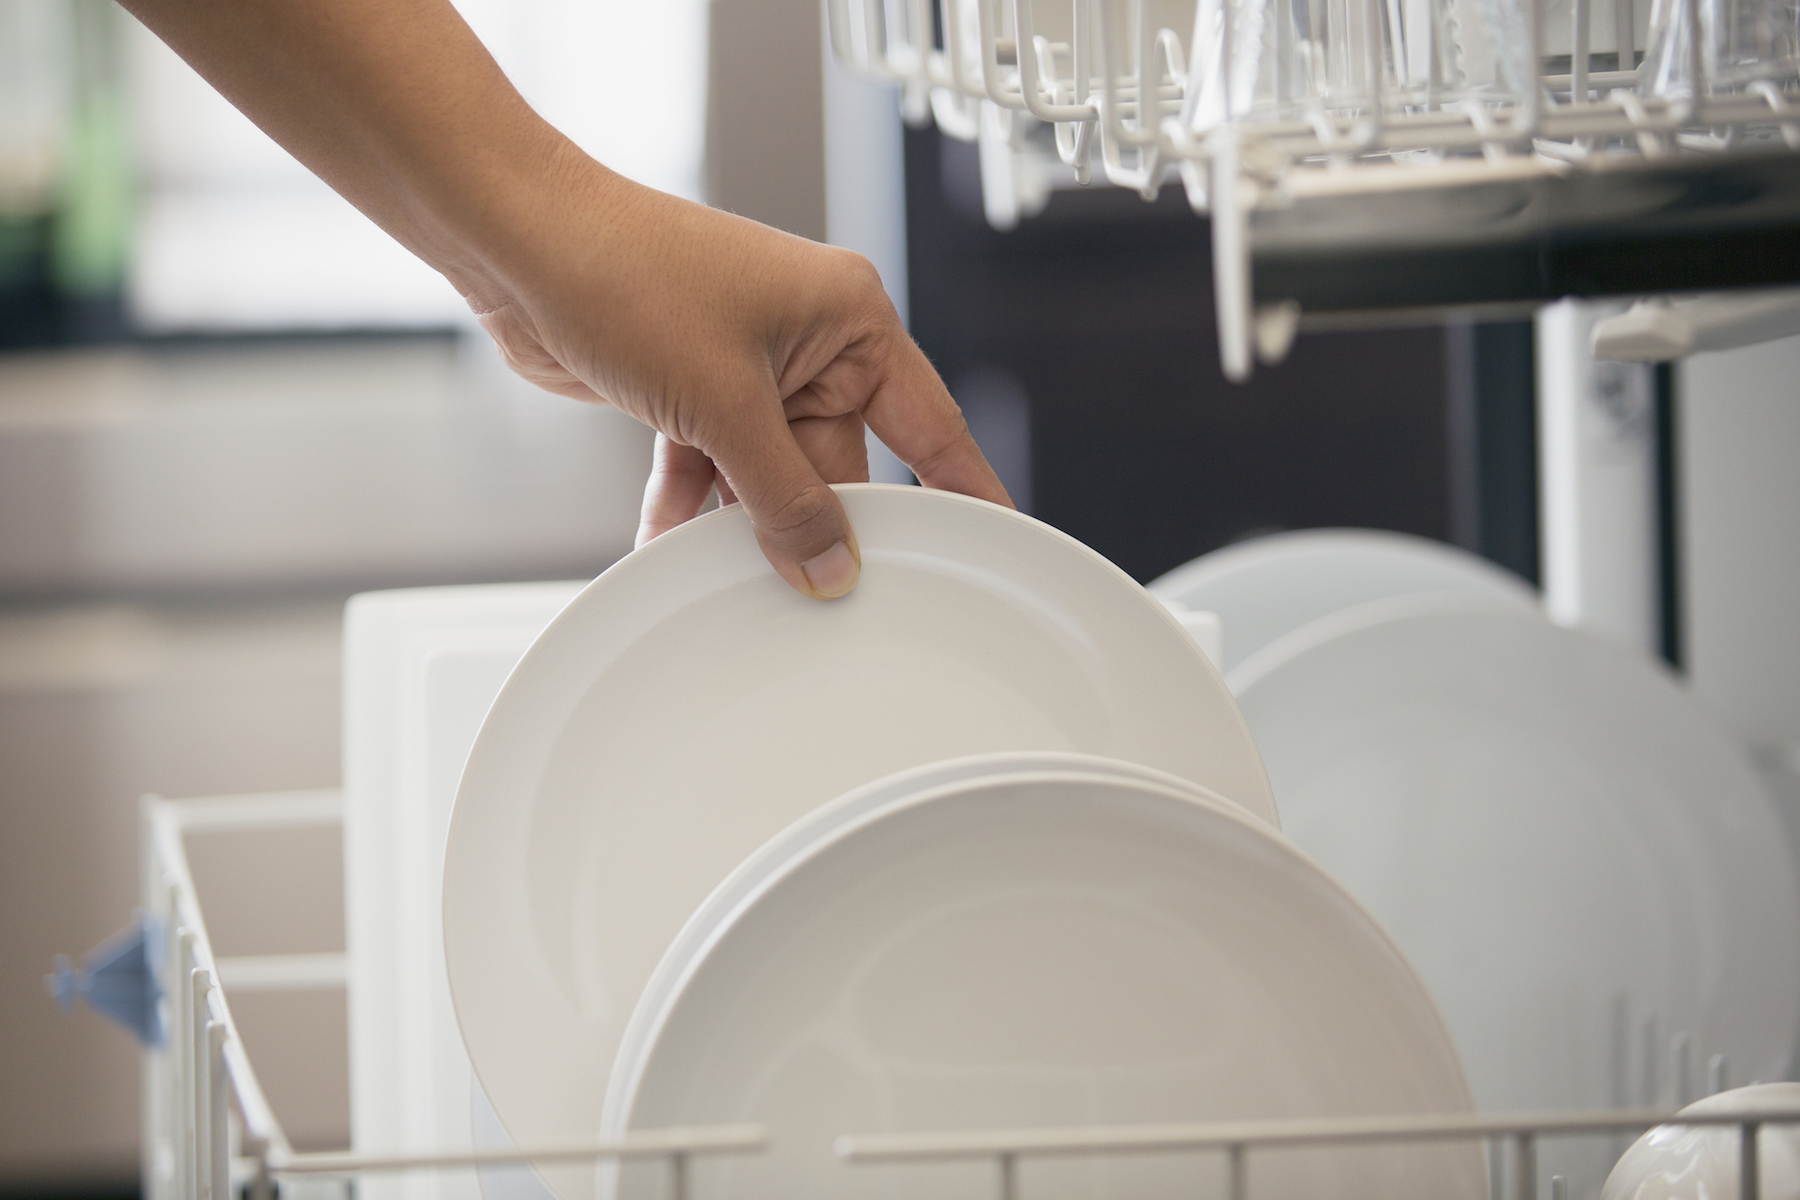 White dishes in Dishwashing machine